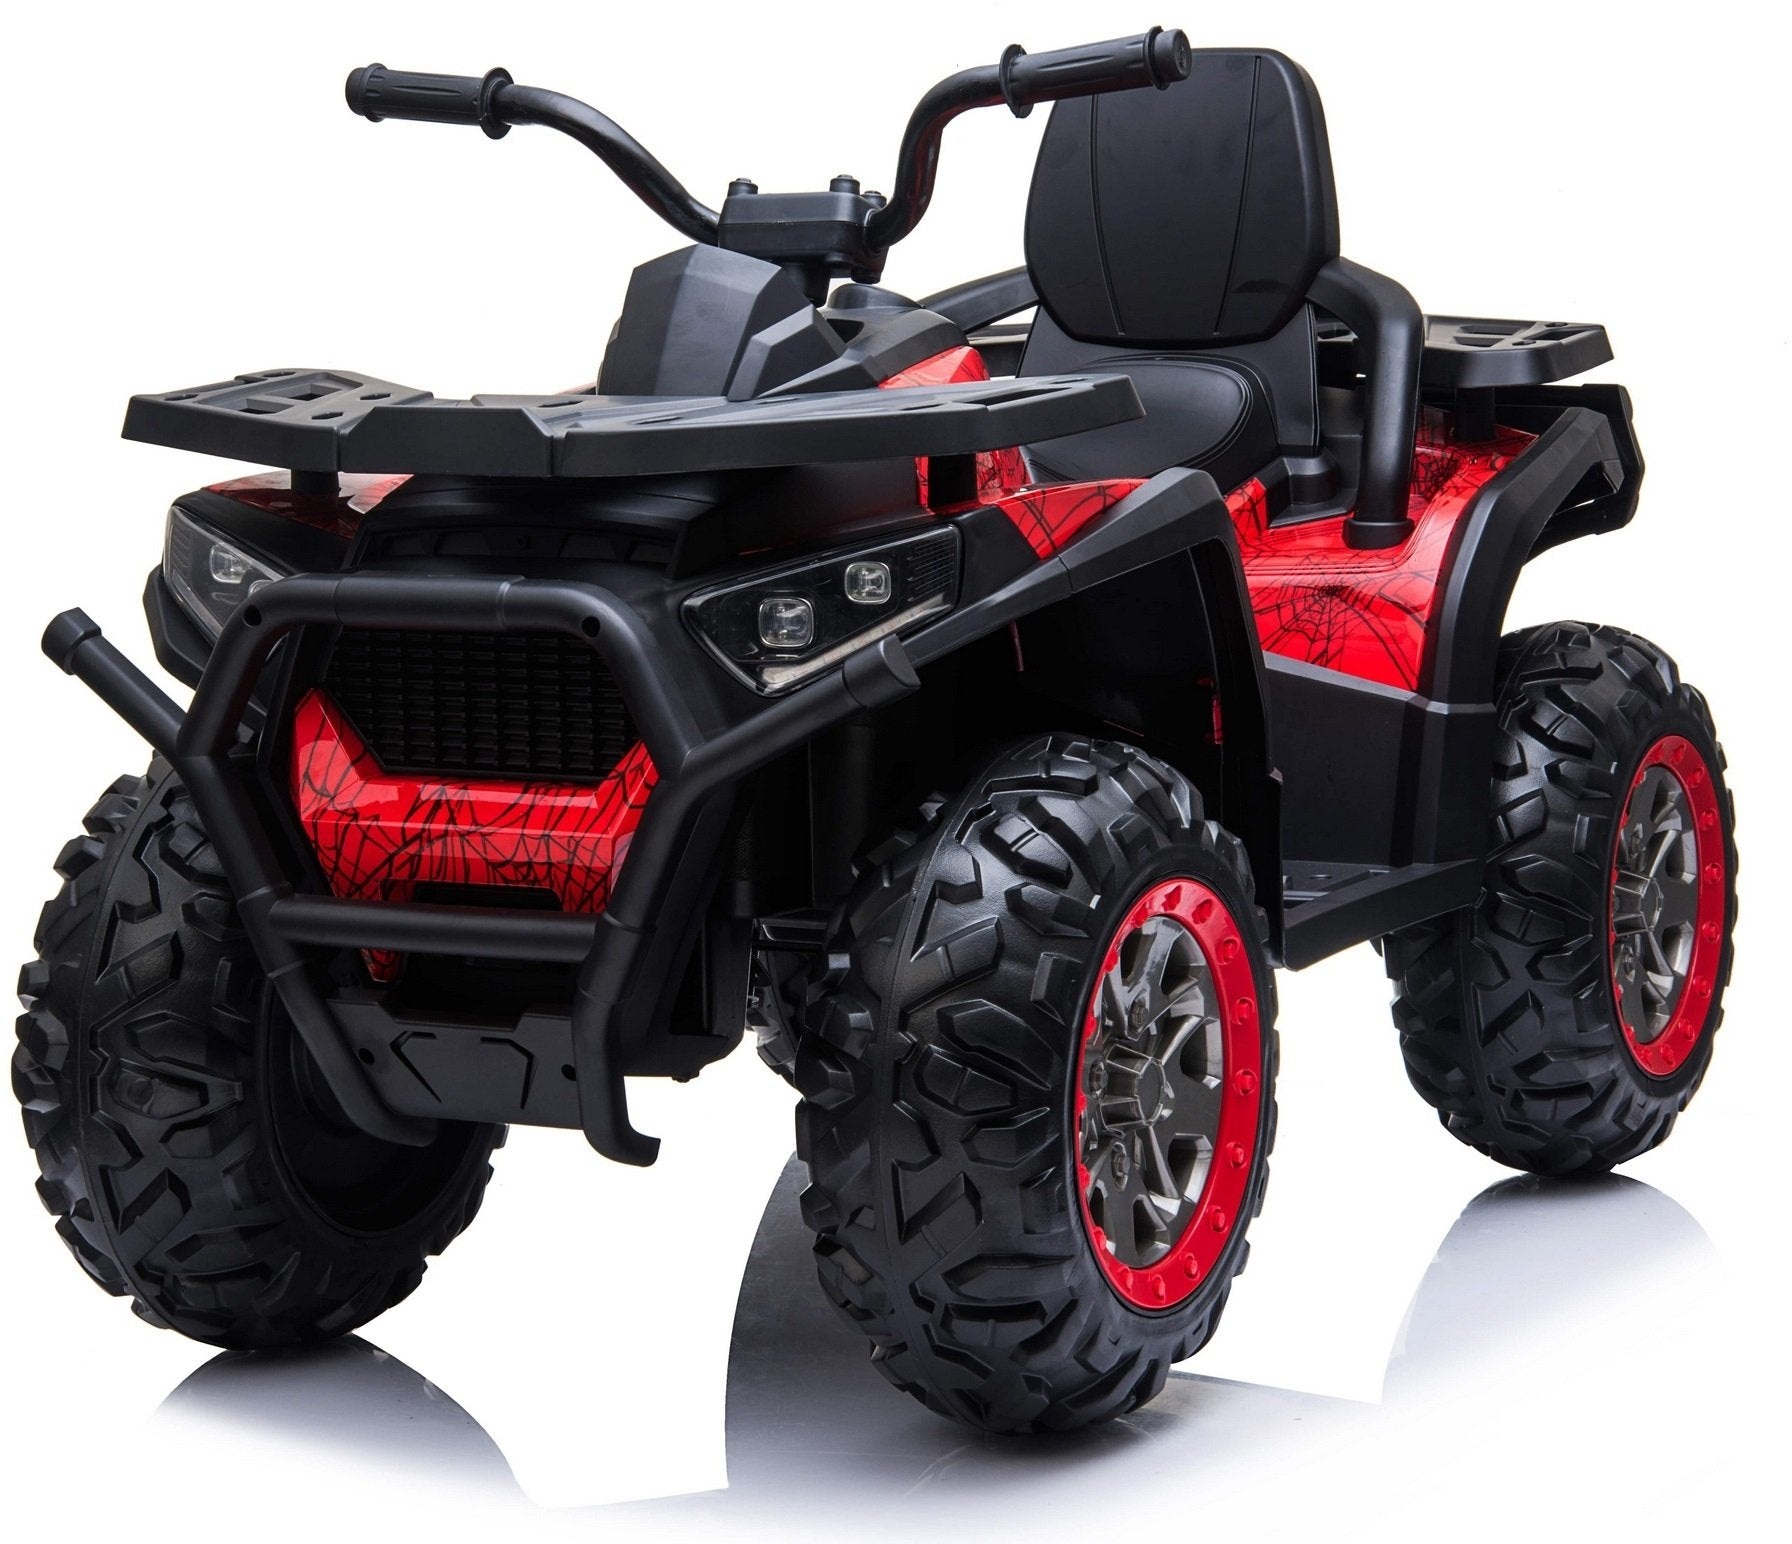 XMX607 Desert ATV 12V with 4 x Motors Electric Ride on Quad Bike - Spyder Red